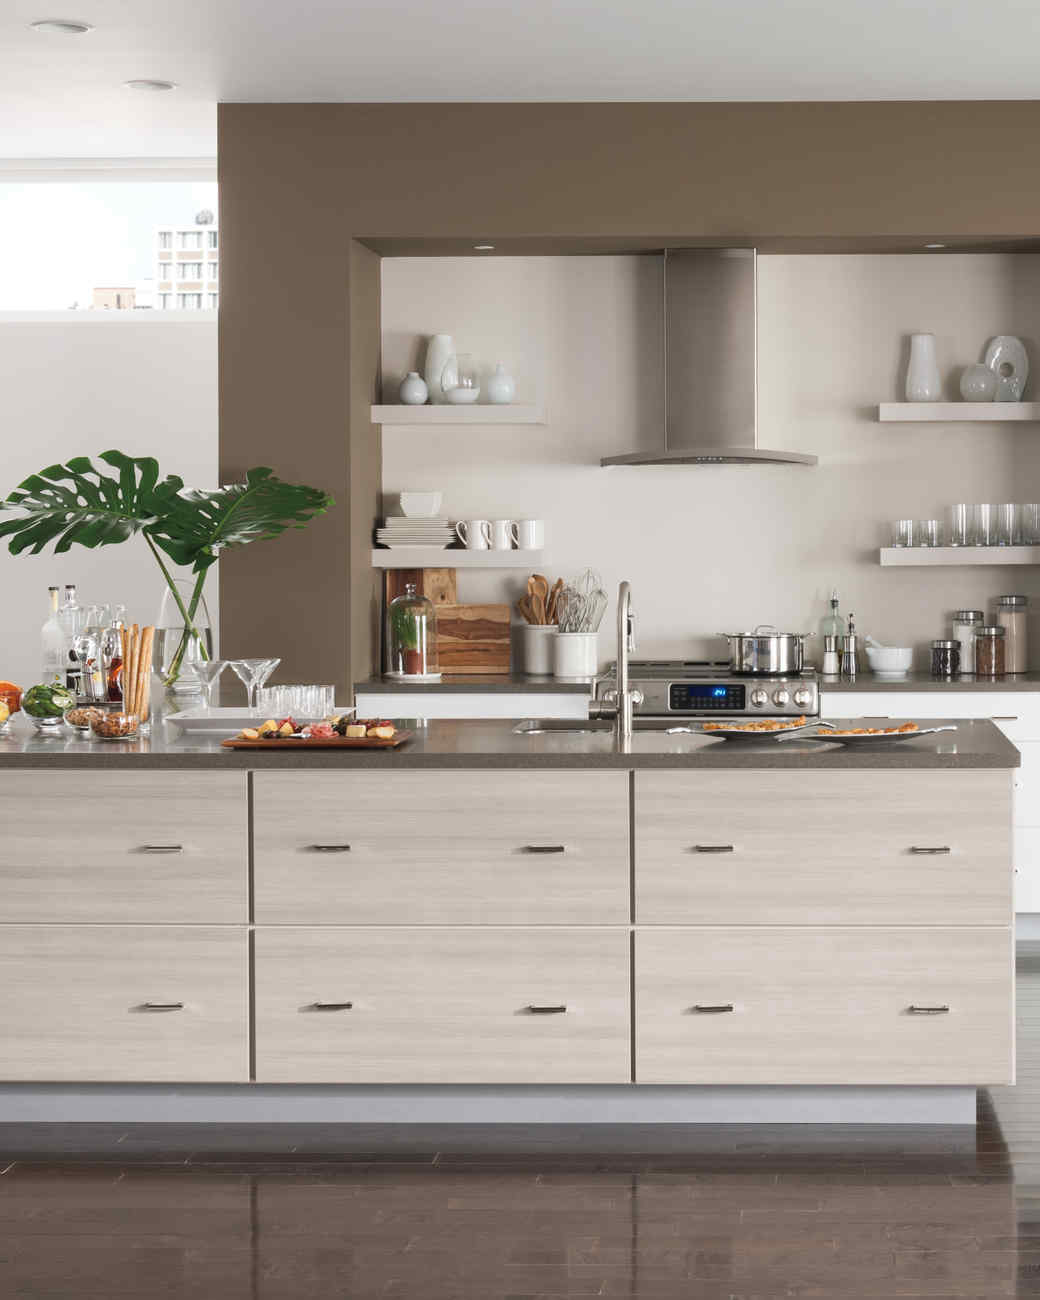 Martha Stewart Kitchen Cabinet Colors: Kitchen Remodel Tips To Live By: The Art Of Functional